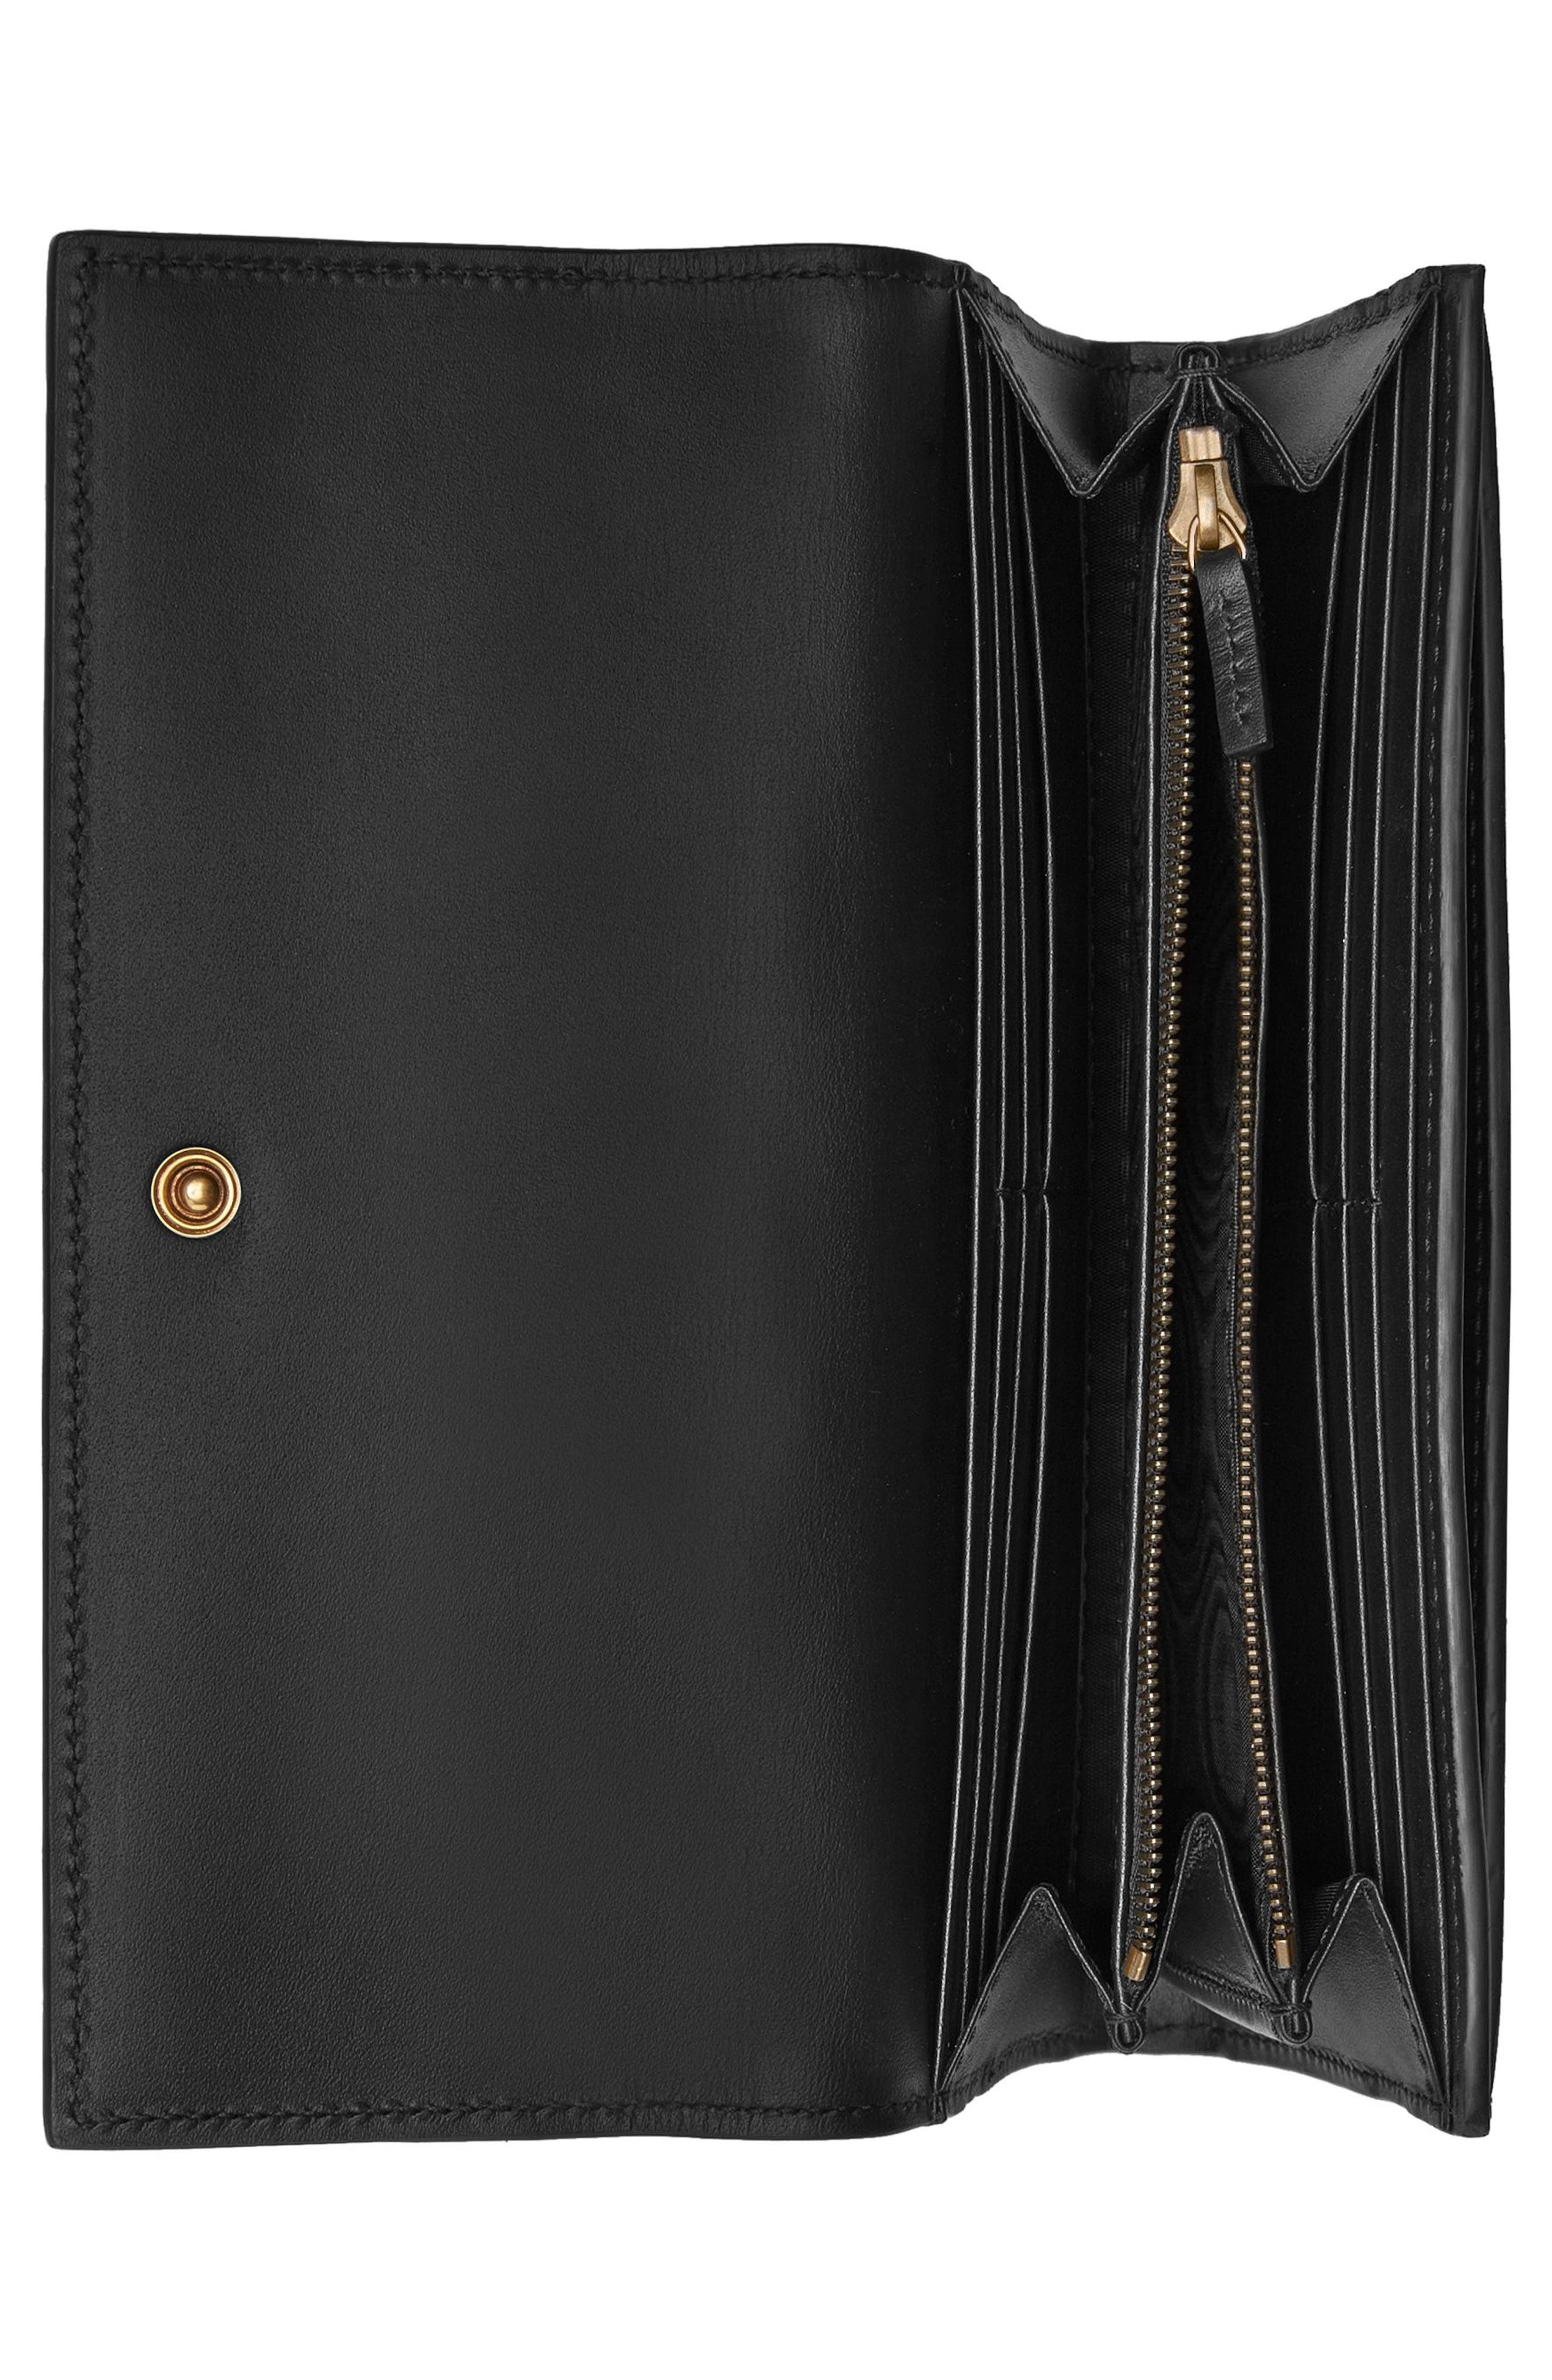 Queen Margaret Leather Flap Wallet,                             Alternate thumbnail 2, color,                             NERO/ NERO/ RUBY